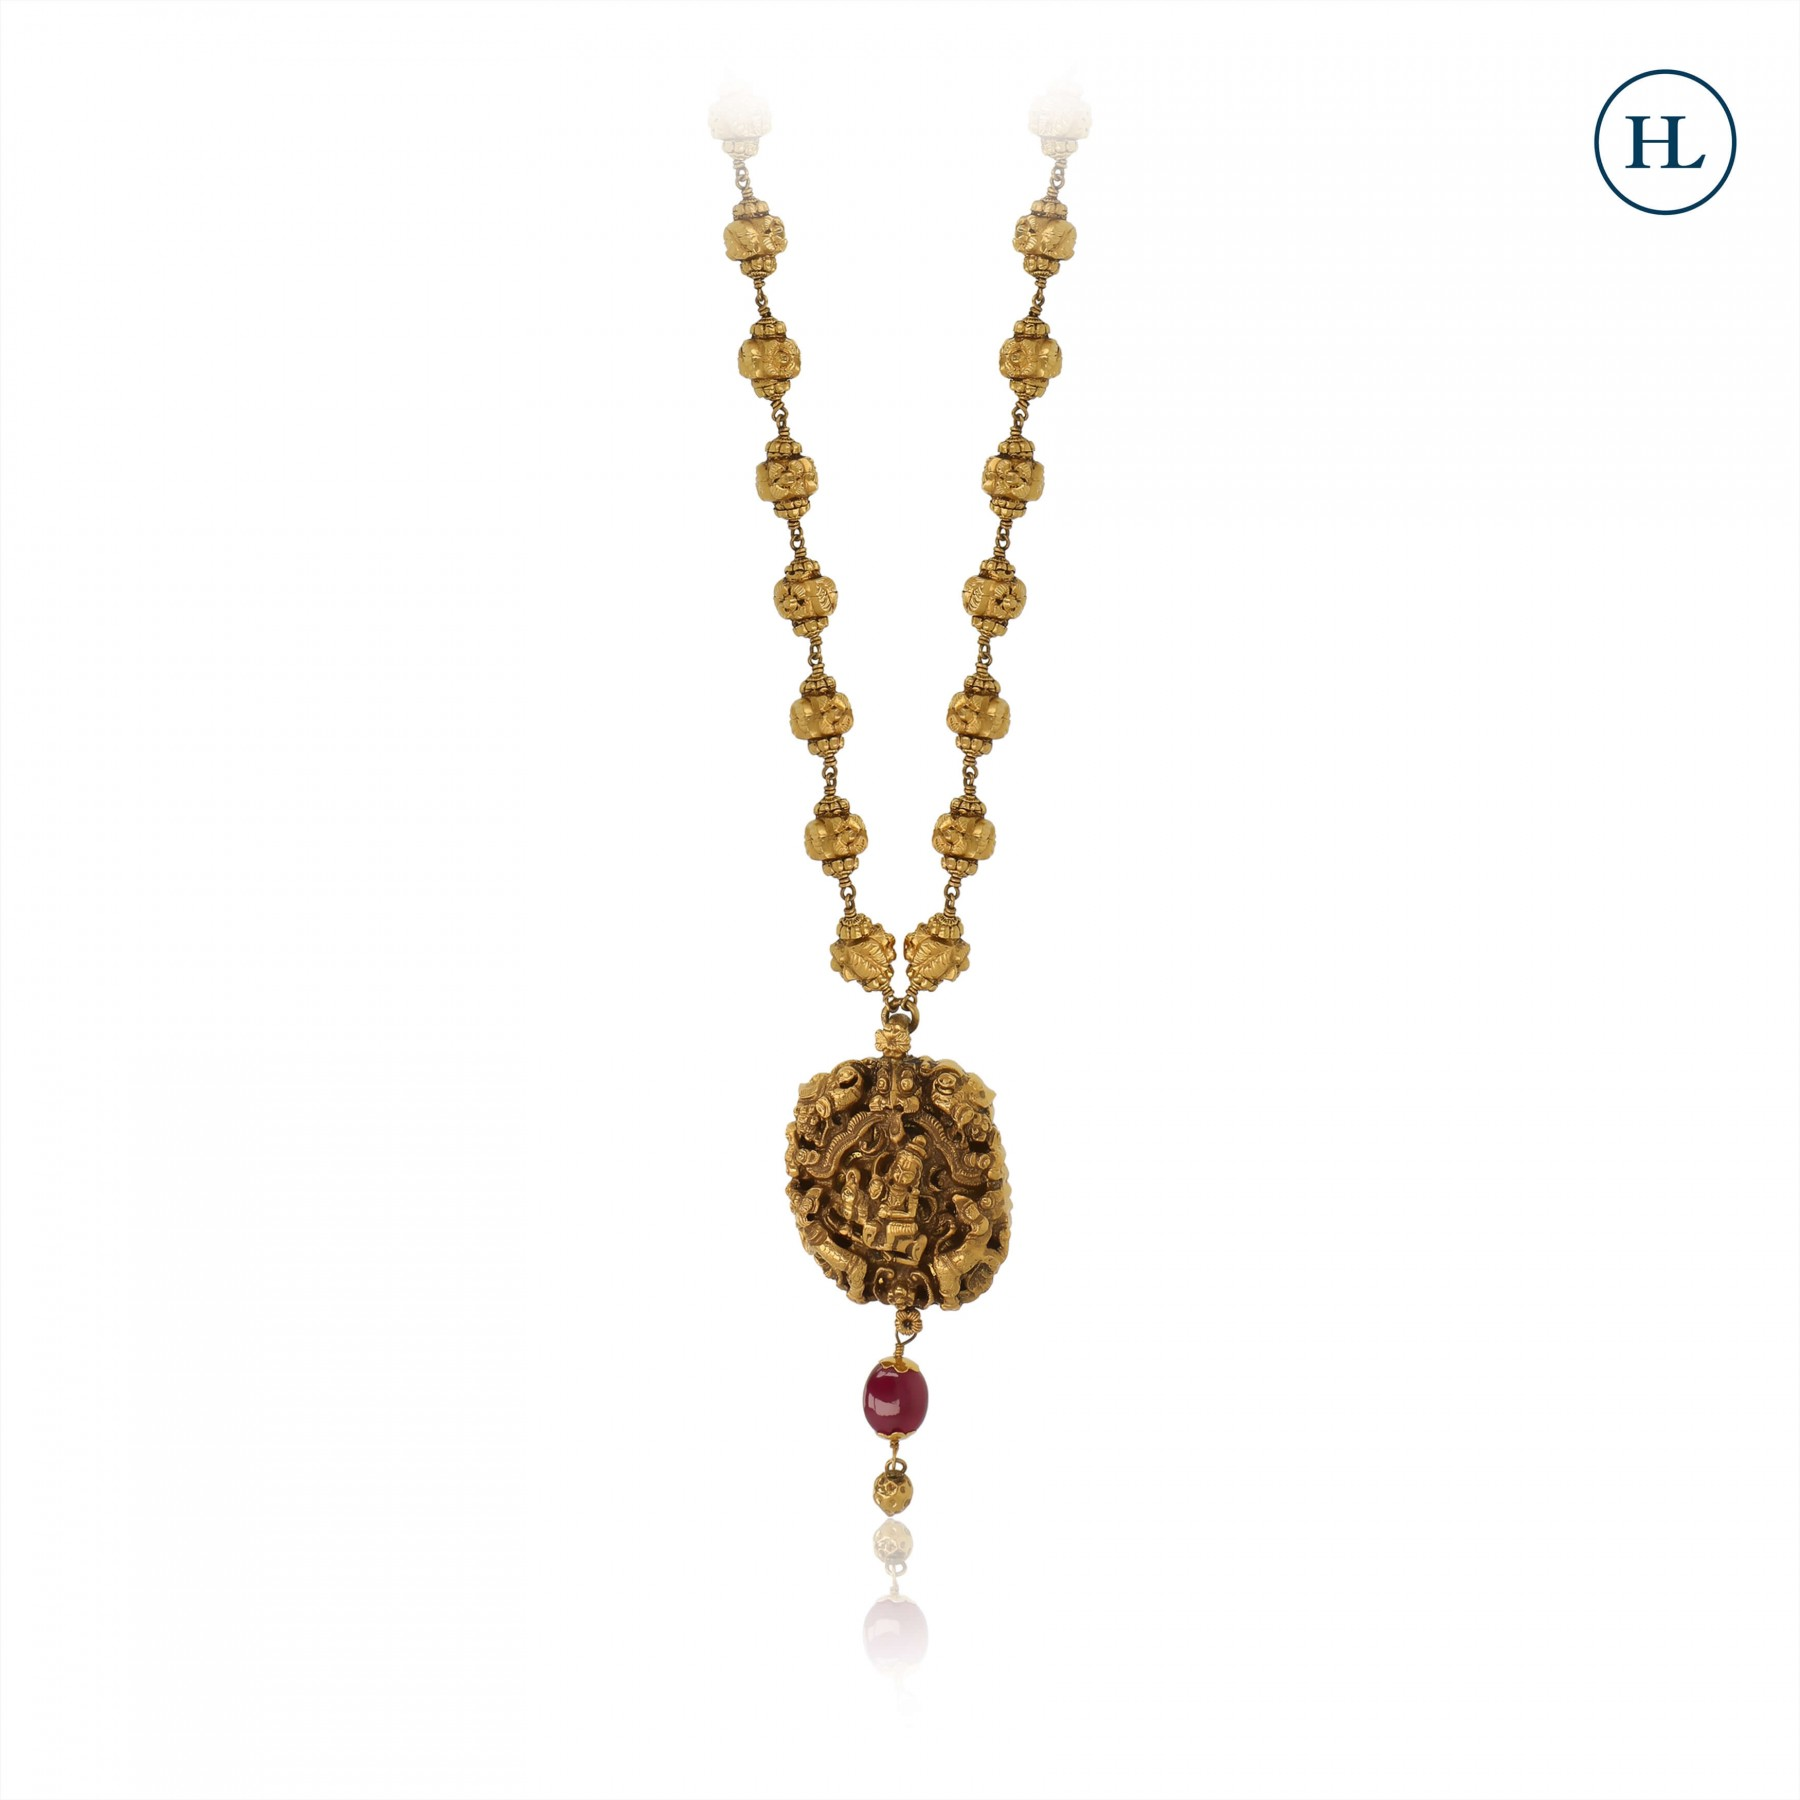 Antique-Styled Temple Gold Pendant